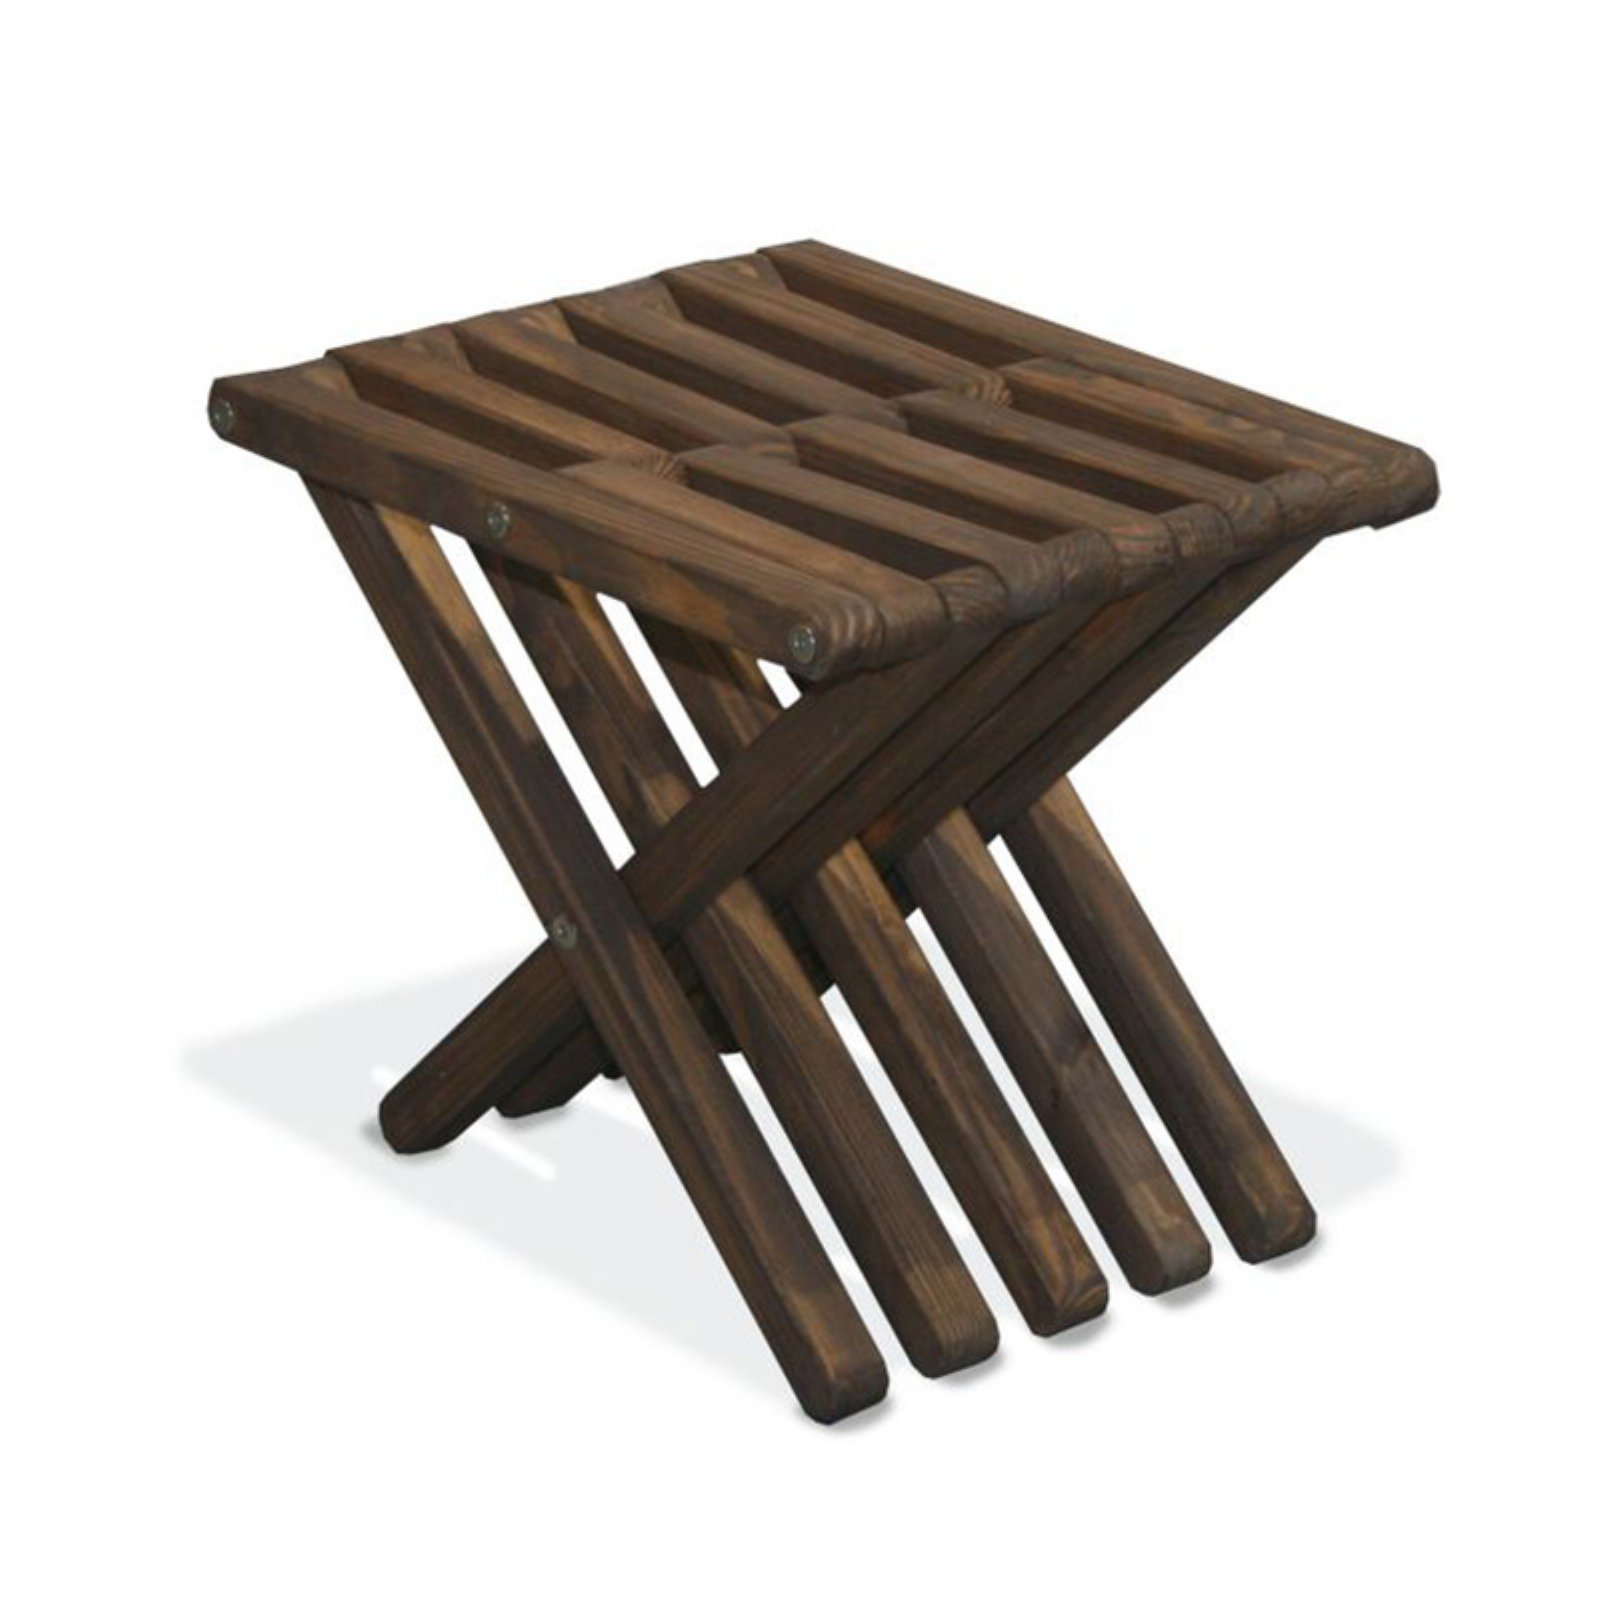 GloDea Xquare X30 Wooden Patio Stool